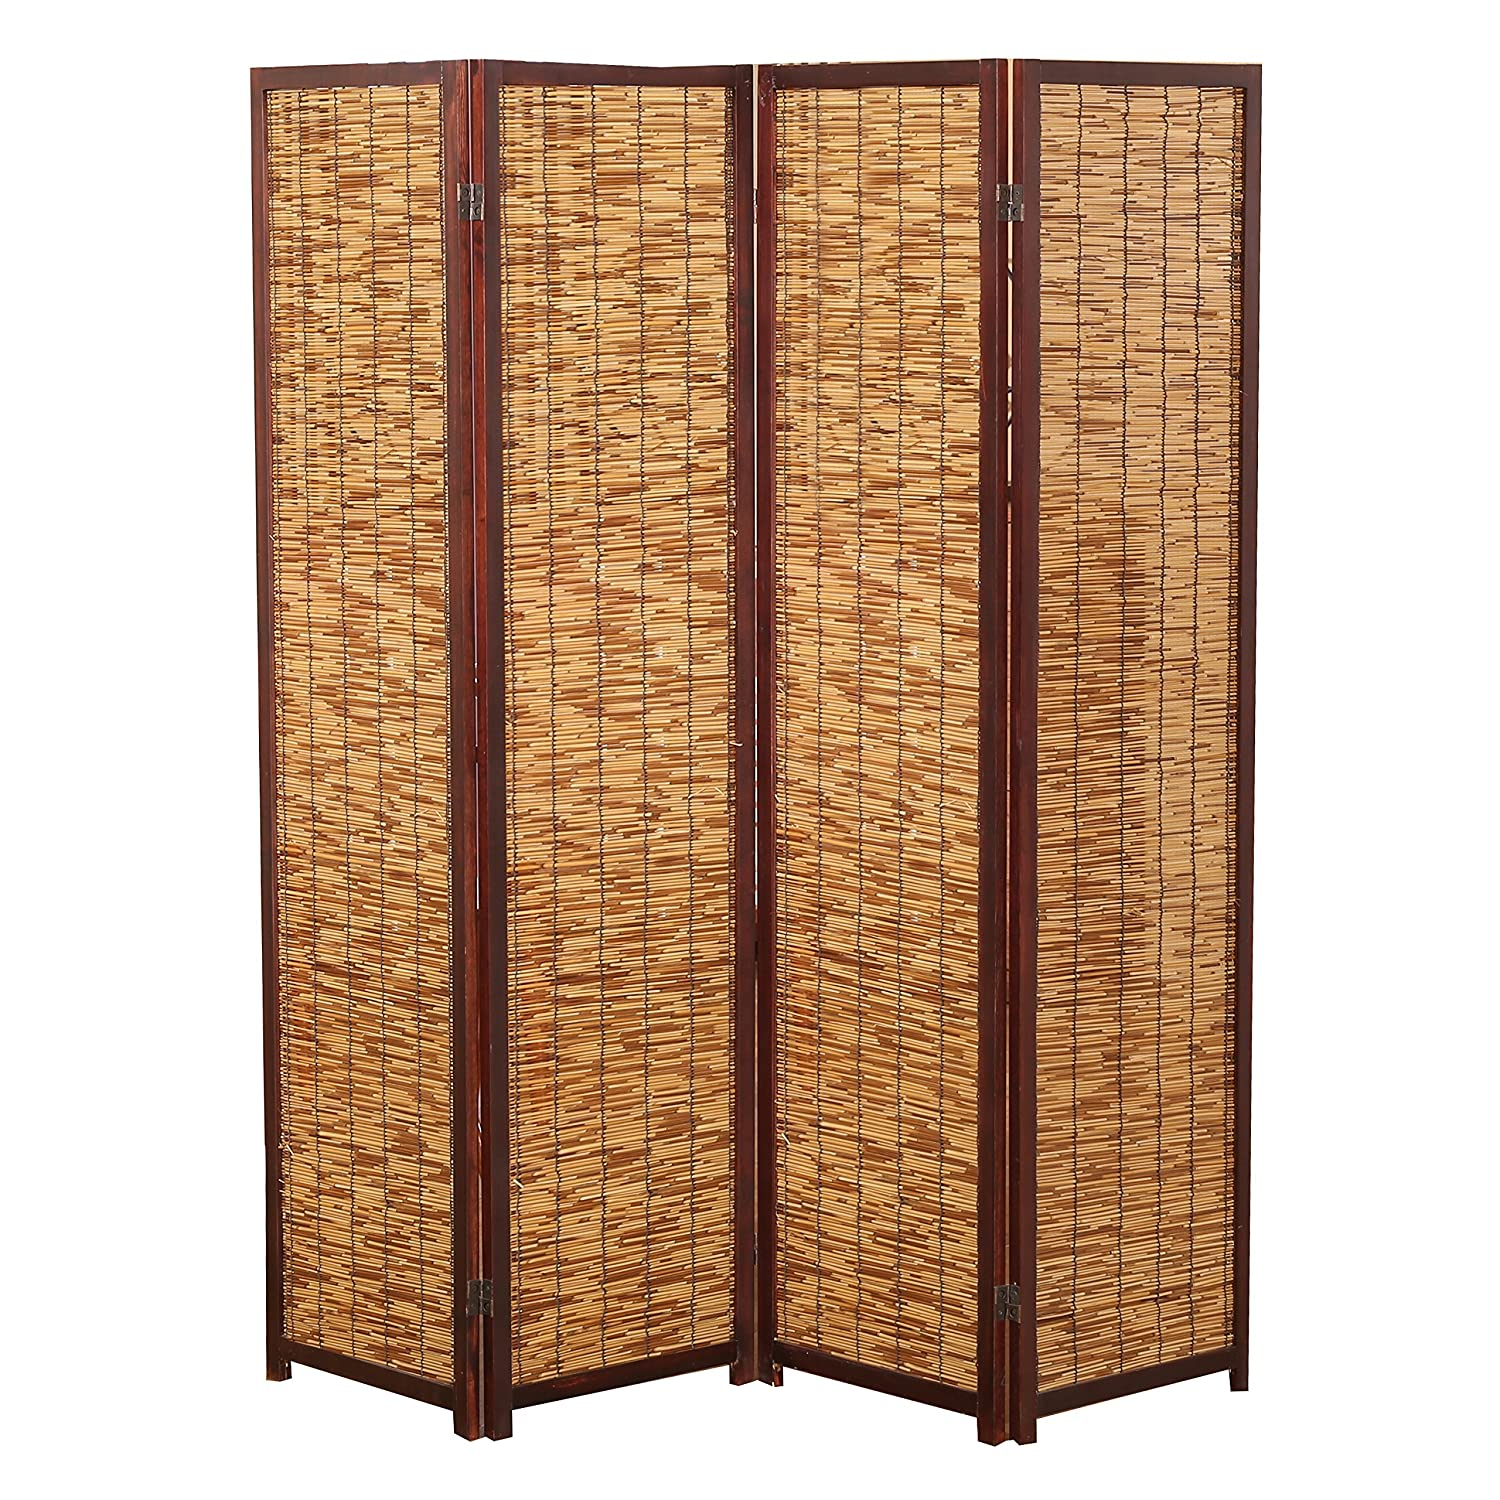 Amazoncom Decorative 4 Panel Wood Bamboo Folding Room Divider